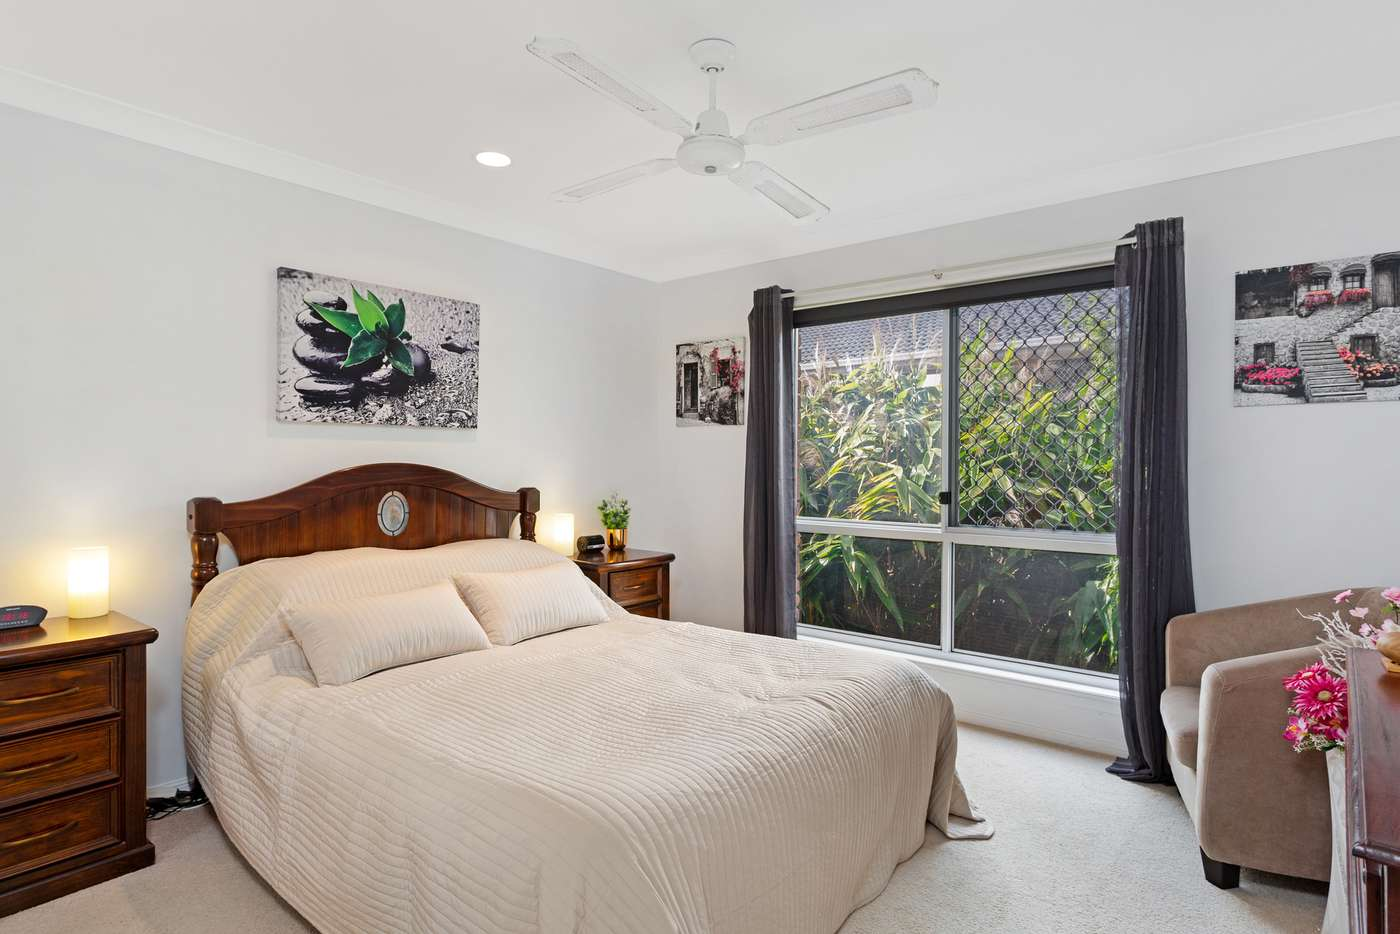 Fifth view of Homely house listing, 23 Trafalgar Street, Highland Park QLD 4211